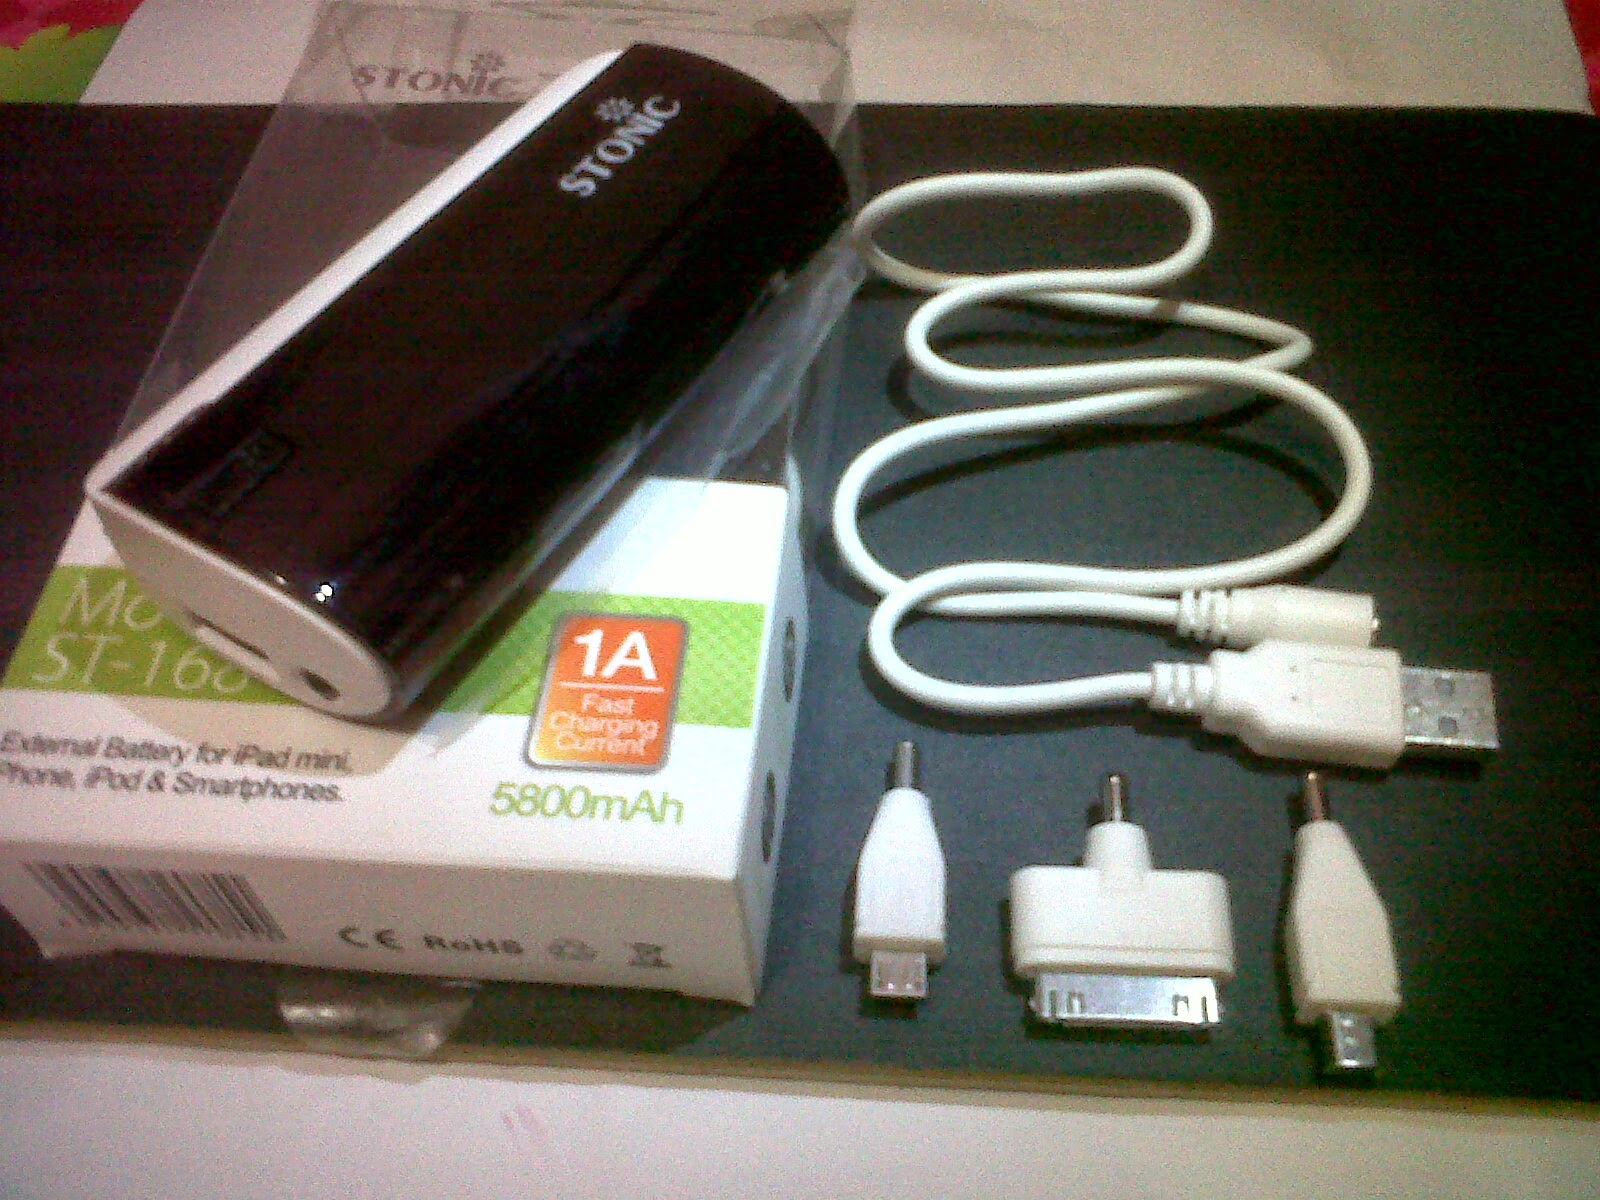 Power Bank Stonic 8400 mAH